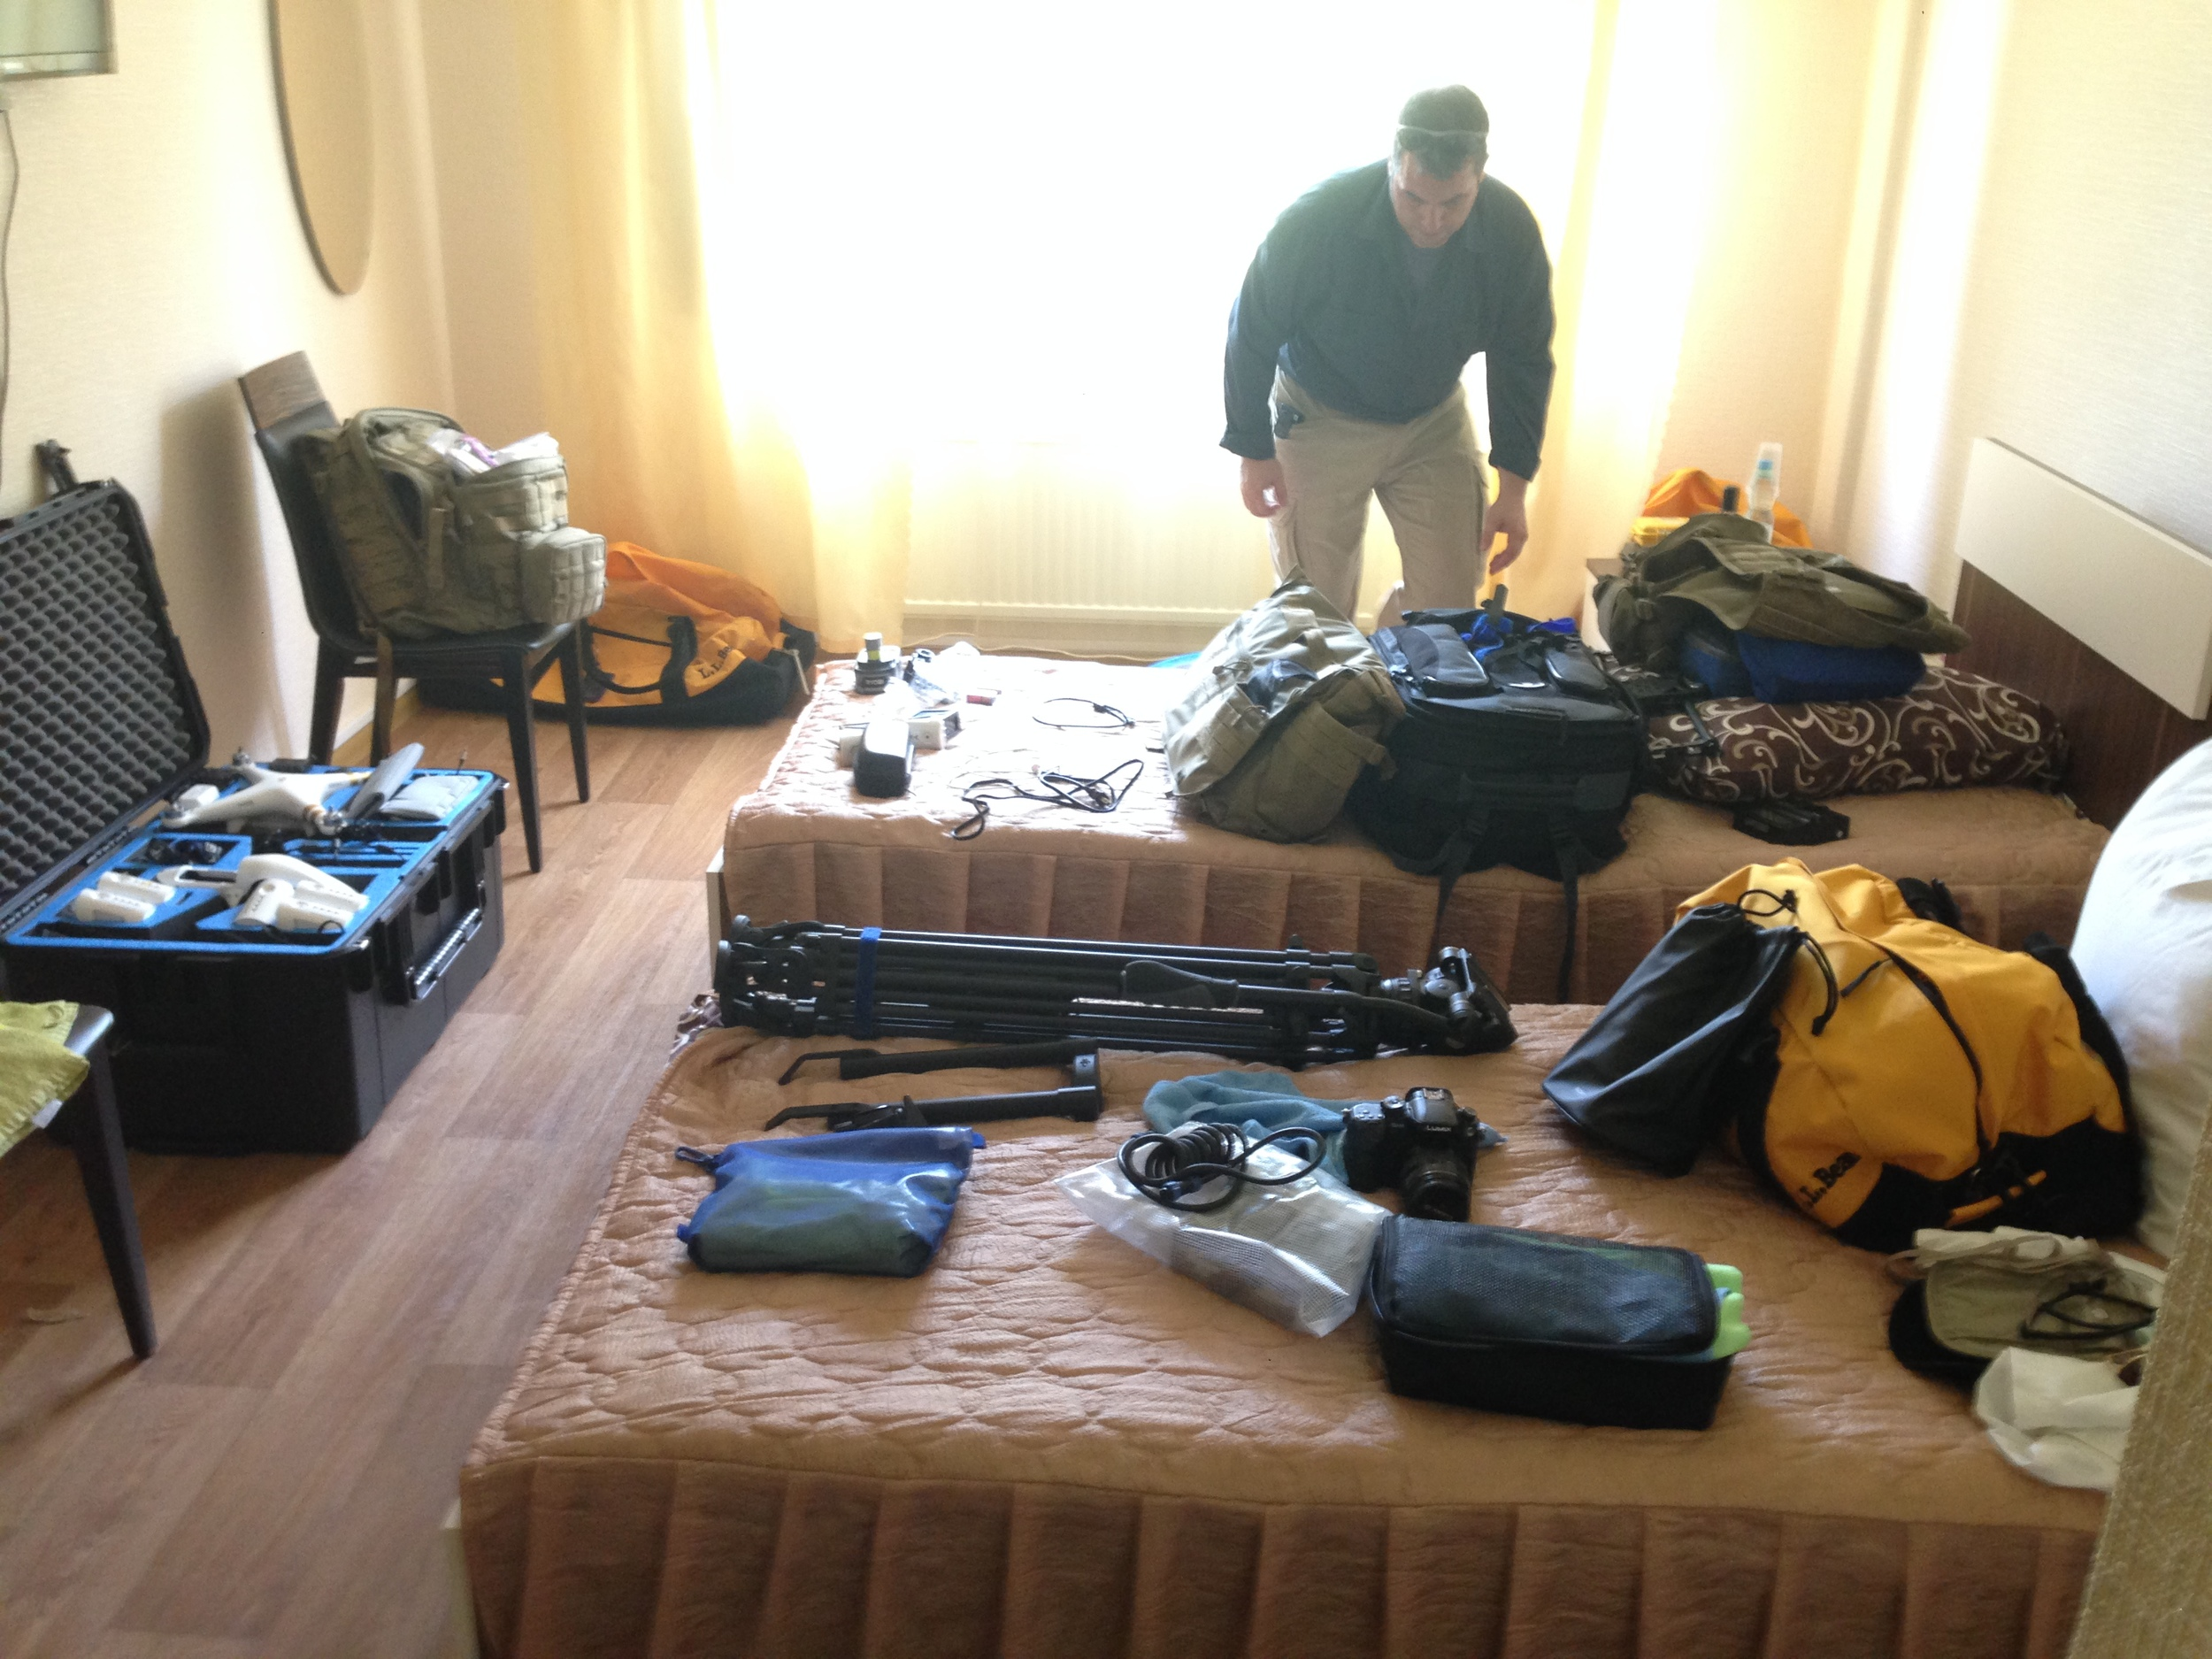 Organizing gear in our room at Hotel 10.